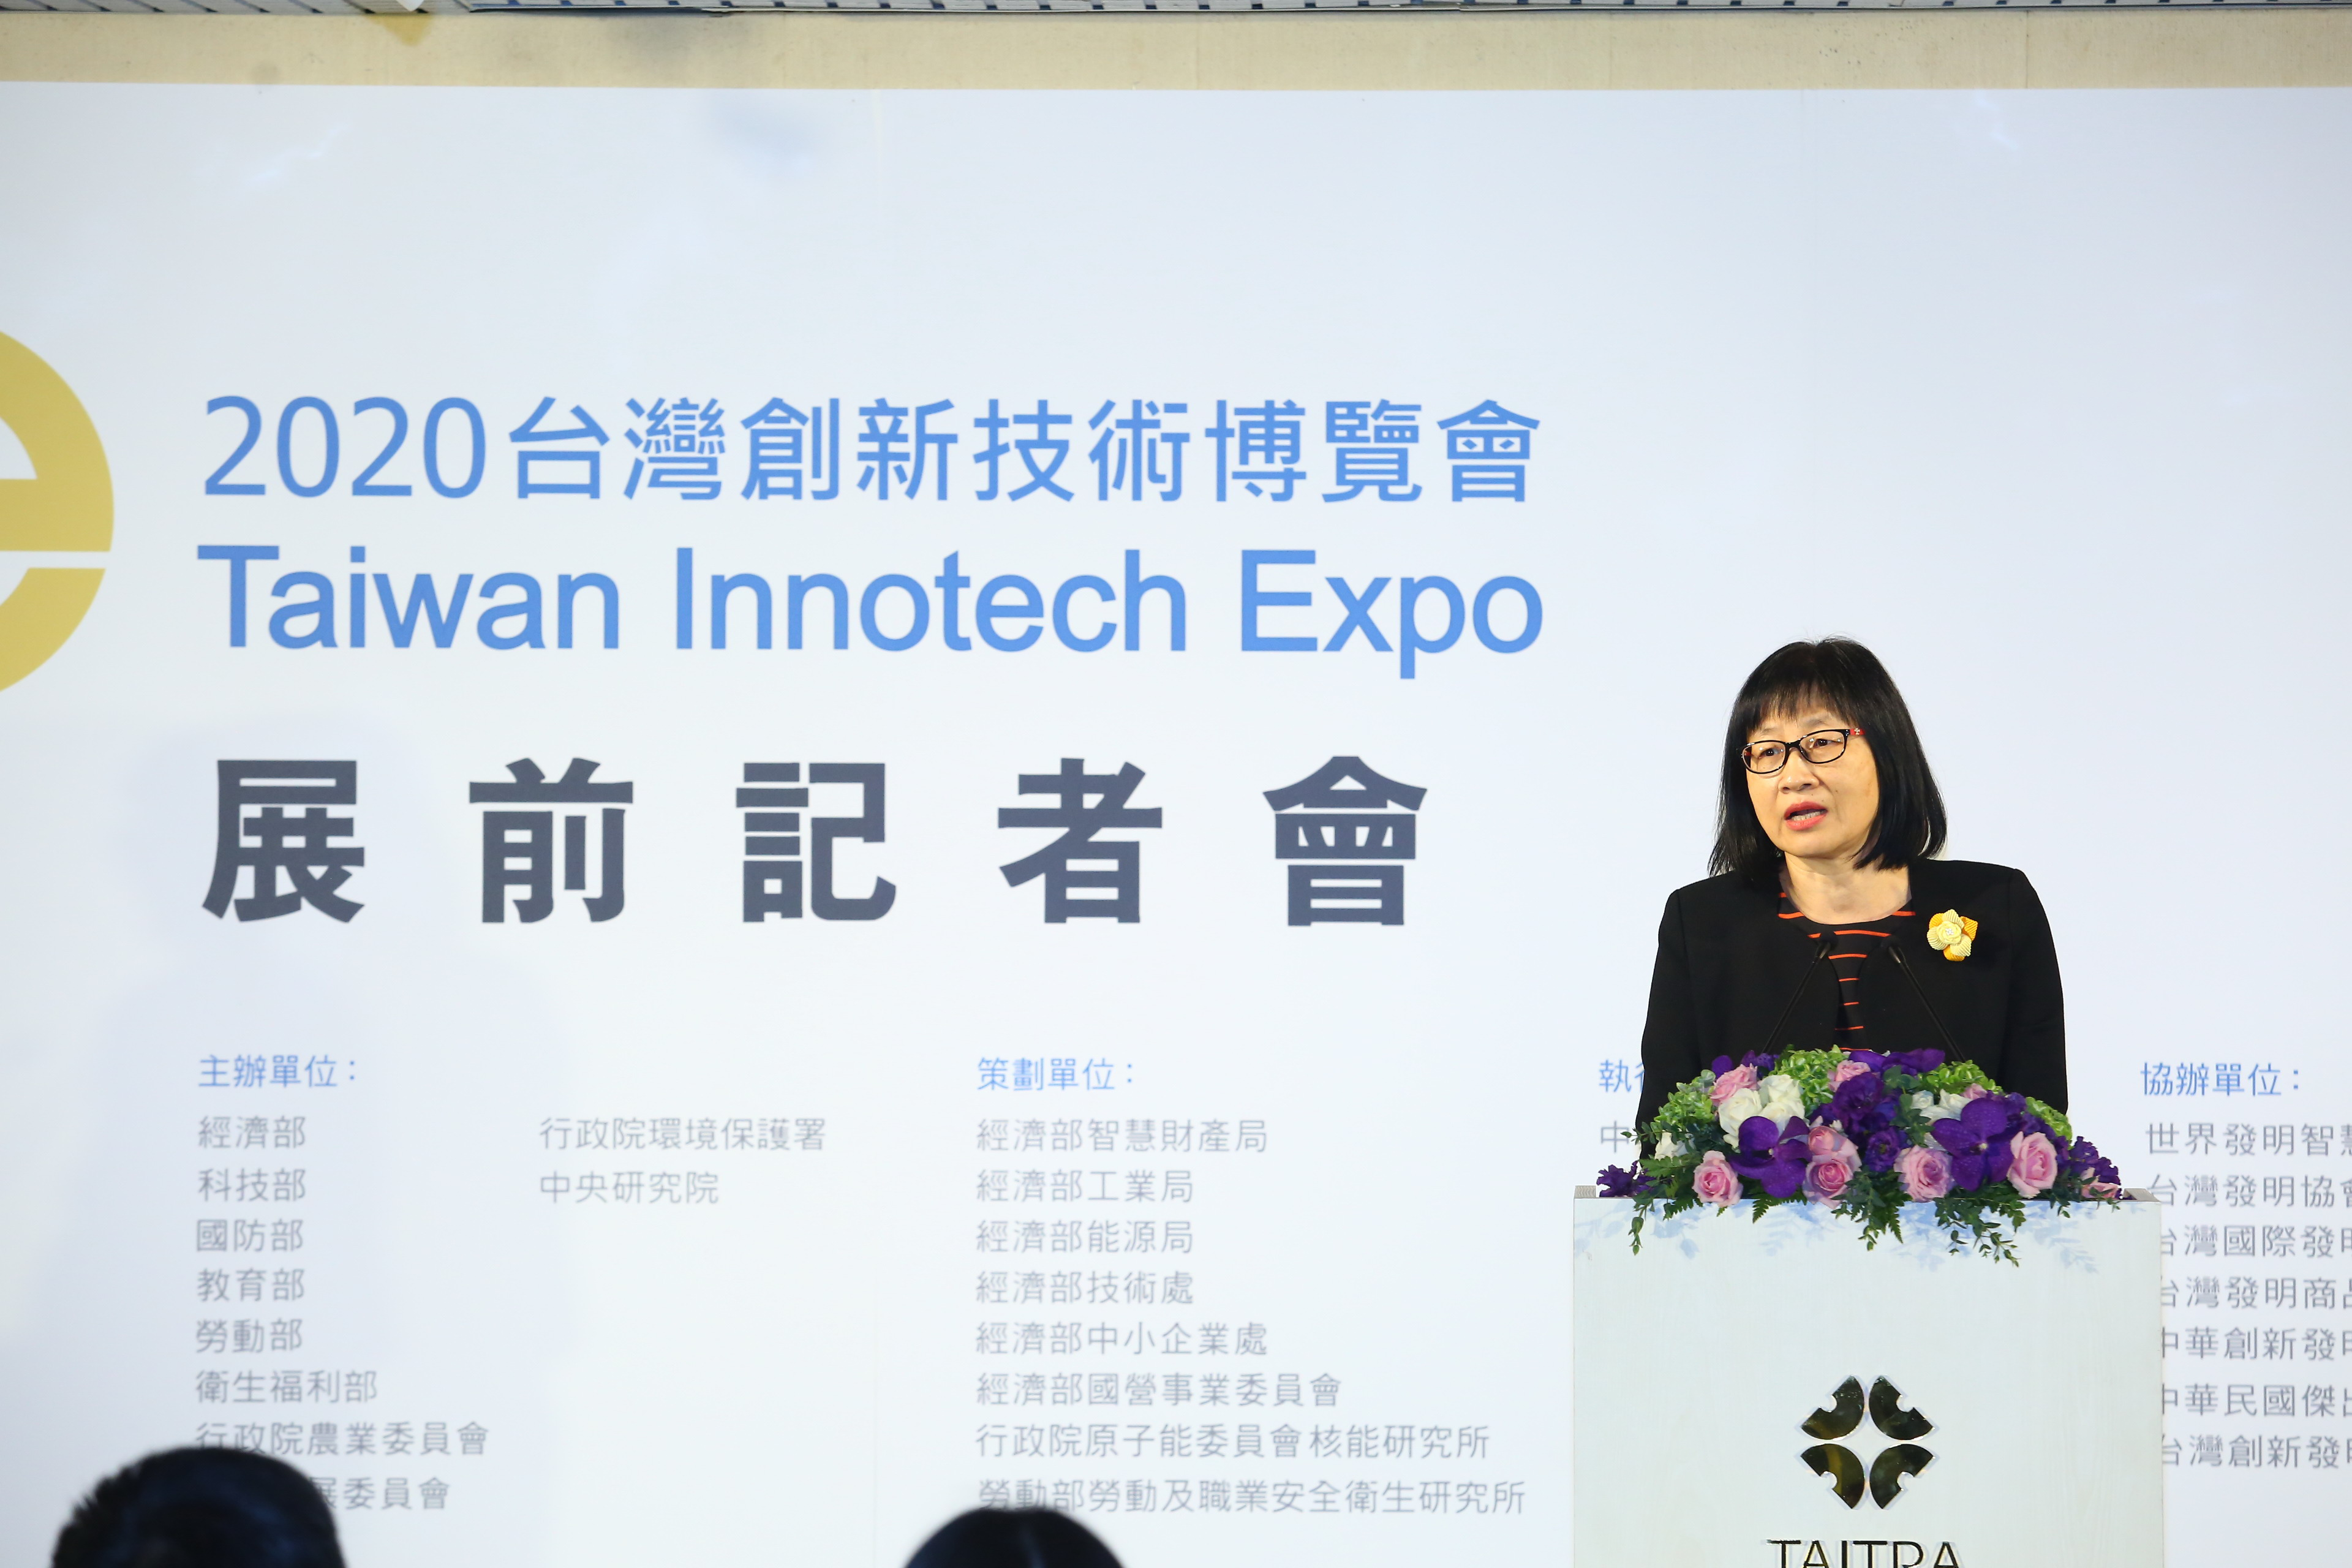 https://storage.googleapis.com/www.taiwantradeshow.com.tw/activity-photo/202009/T-33373040-name.jpg